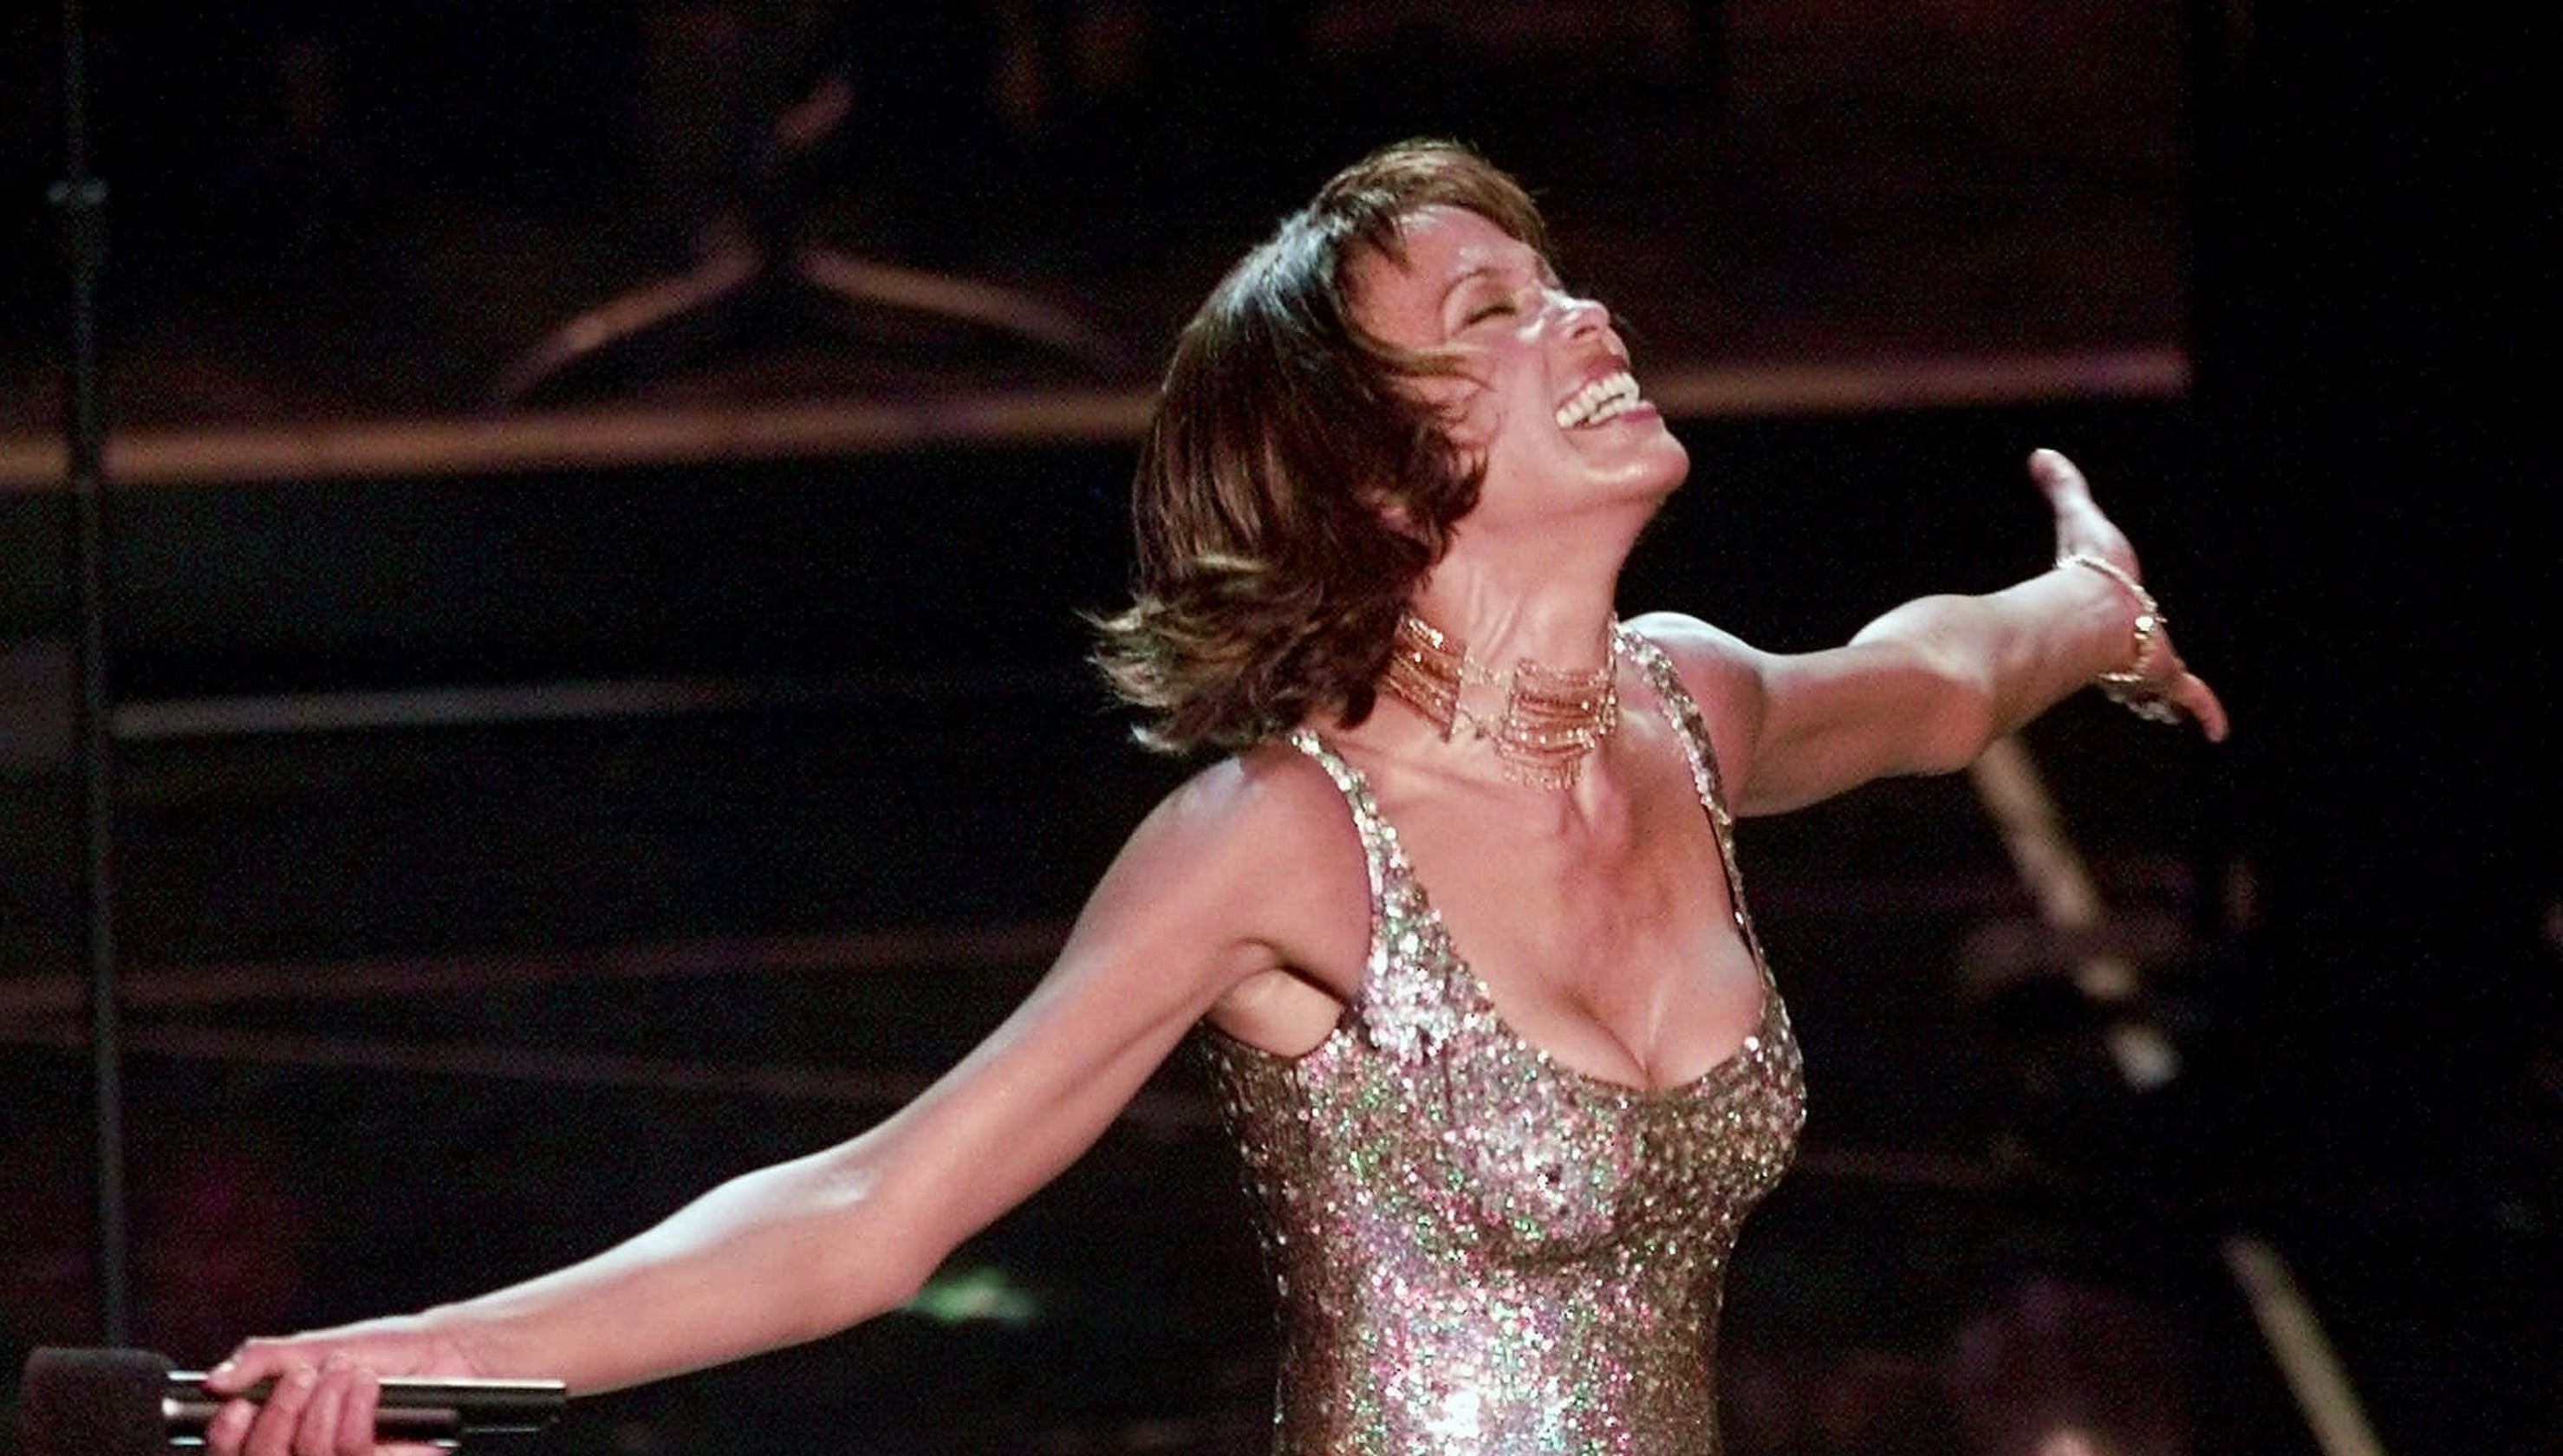 Starbucks is playing Whitney Houston music all day in honor of her 55th birthday